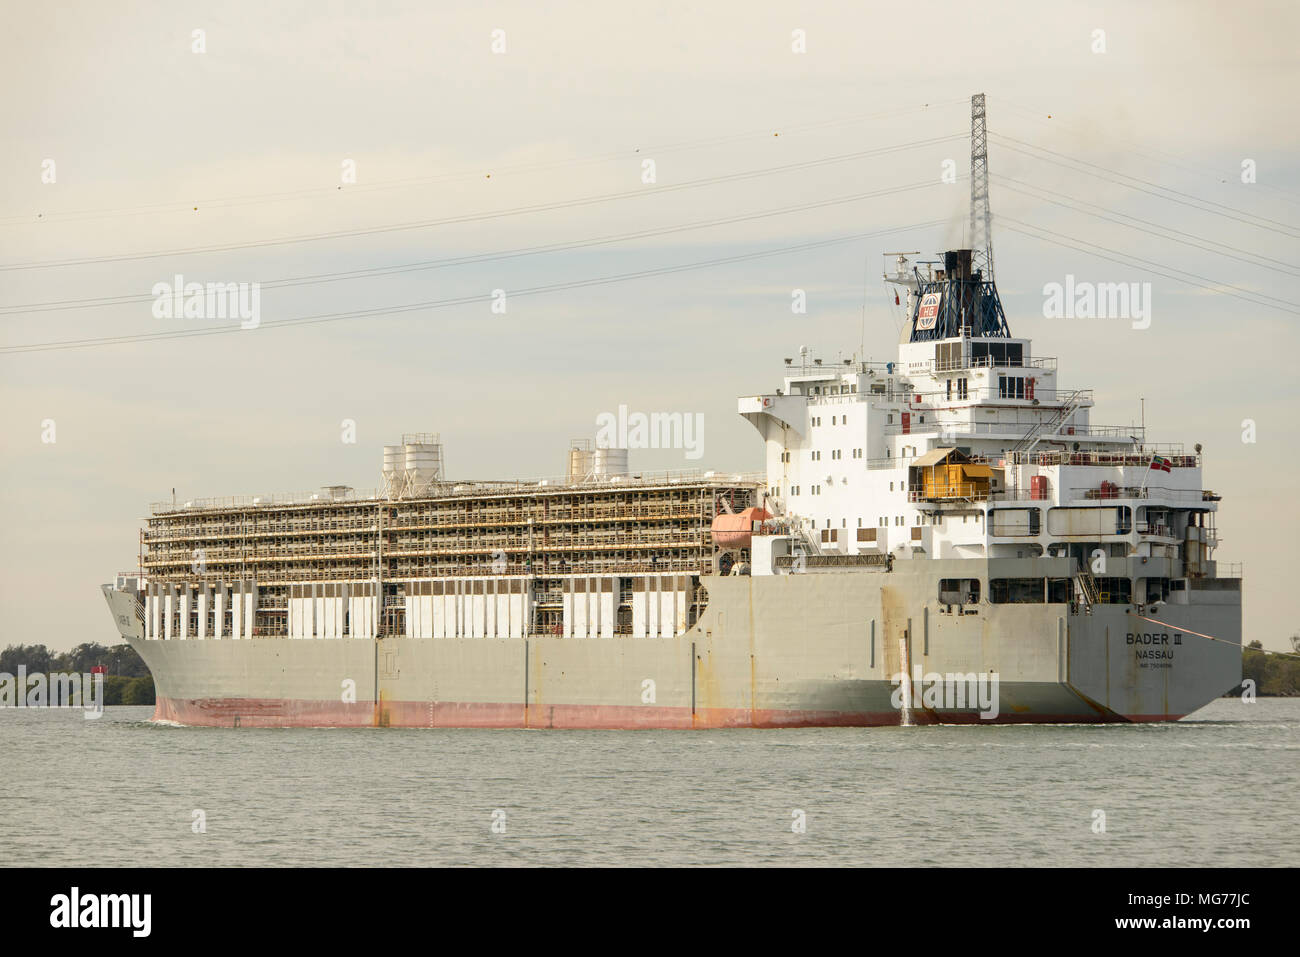 Port Adelaide, Australia 28th April 2018. The controversial Livestock Carrier Bader III leaves Adelaide for Fremantle loaded with sheep and cattle after rowdy animal welfare protests over cruelty claims. Sheep can be seen free on the decks. Ray Warren/Alamy Live News Stock Photo